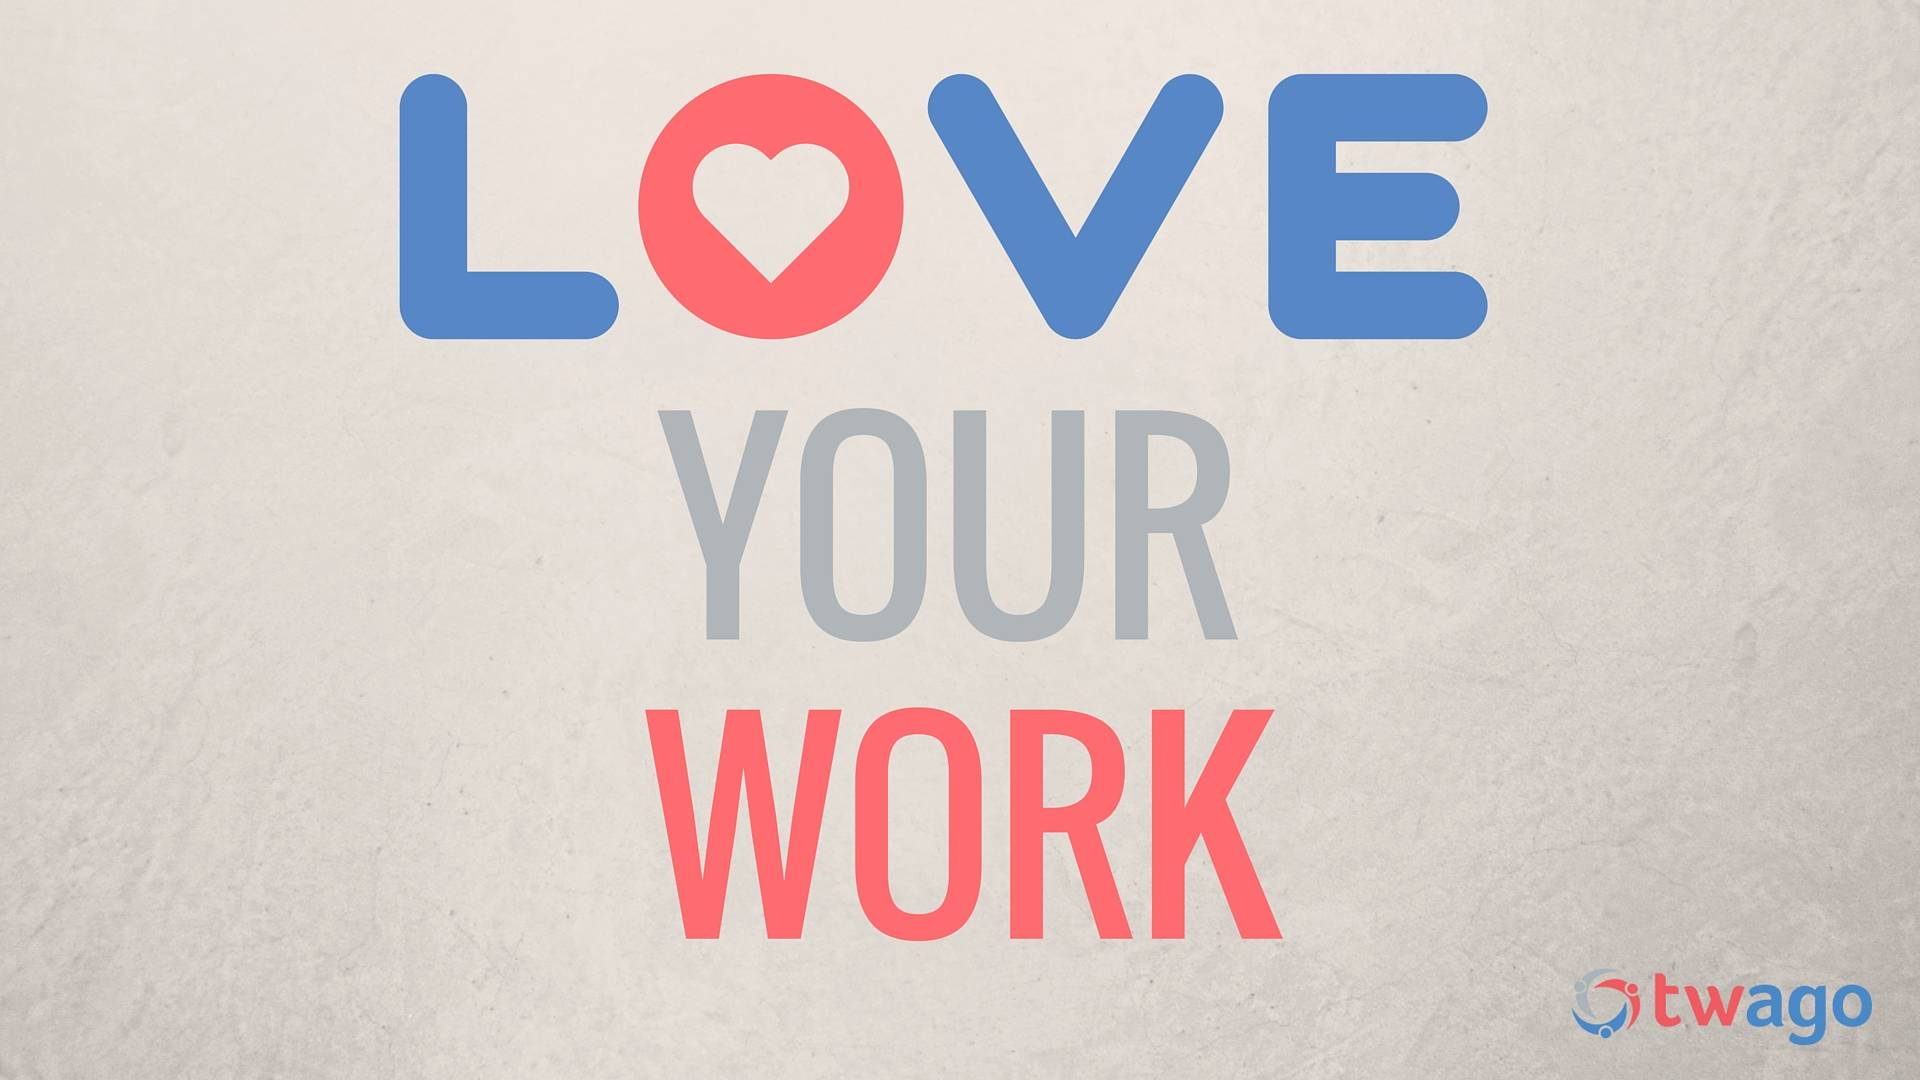 Love Your Wallpaper : 10 Free Desktop Wallpapers to Inspire Your Working Life ...